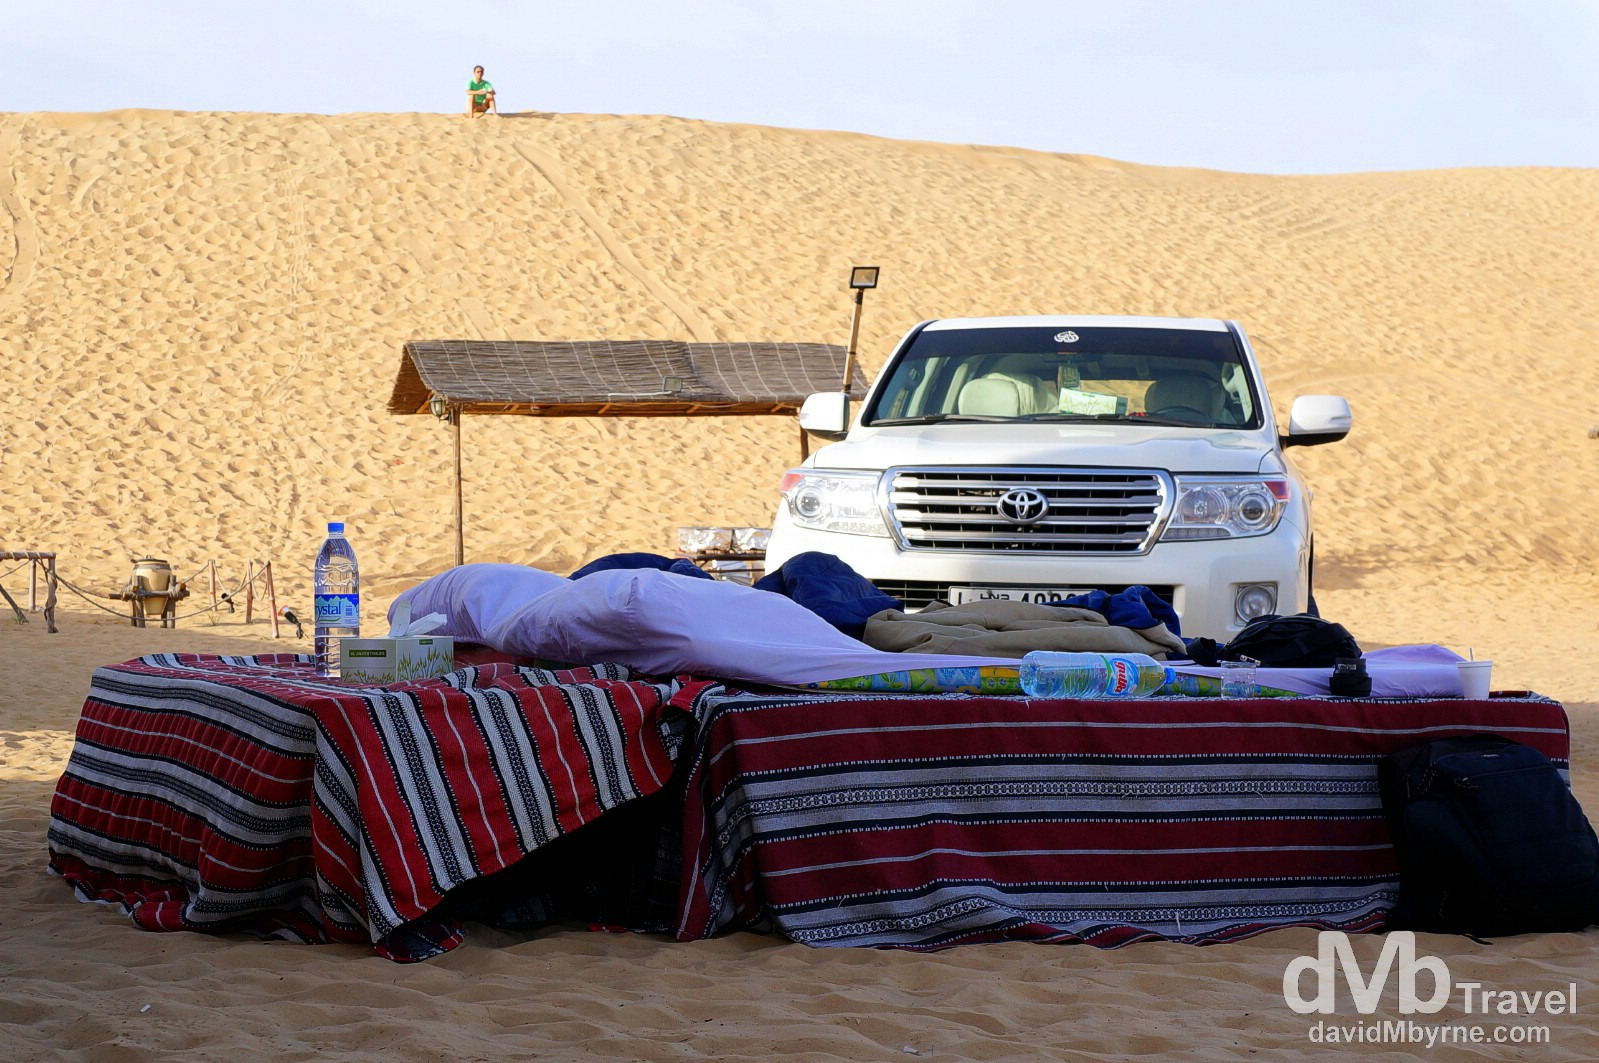 North Tours Desert Camp outside Dubai, UAE. April 18th, 2014.